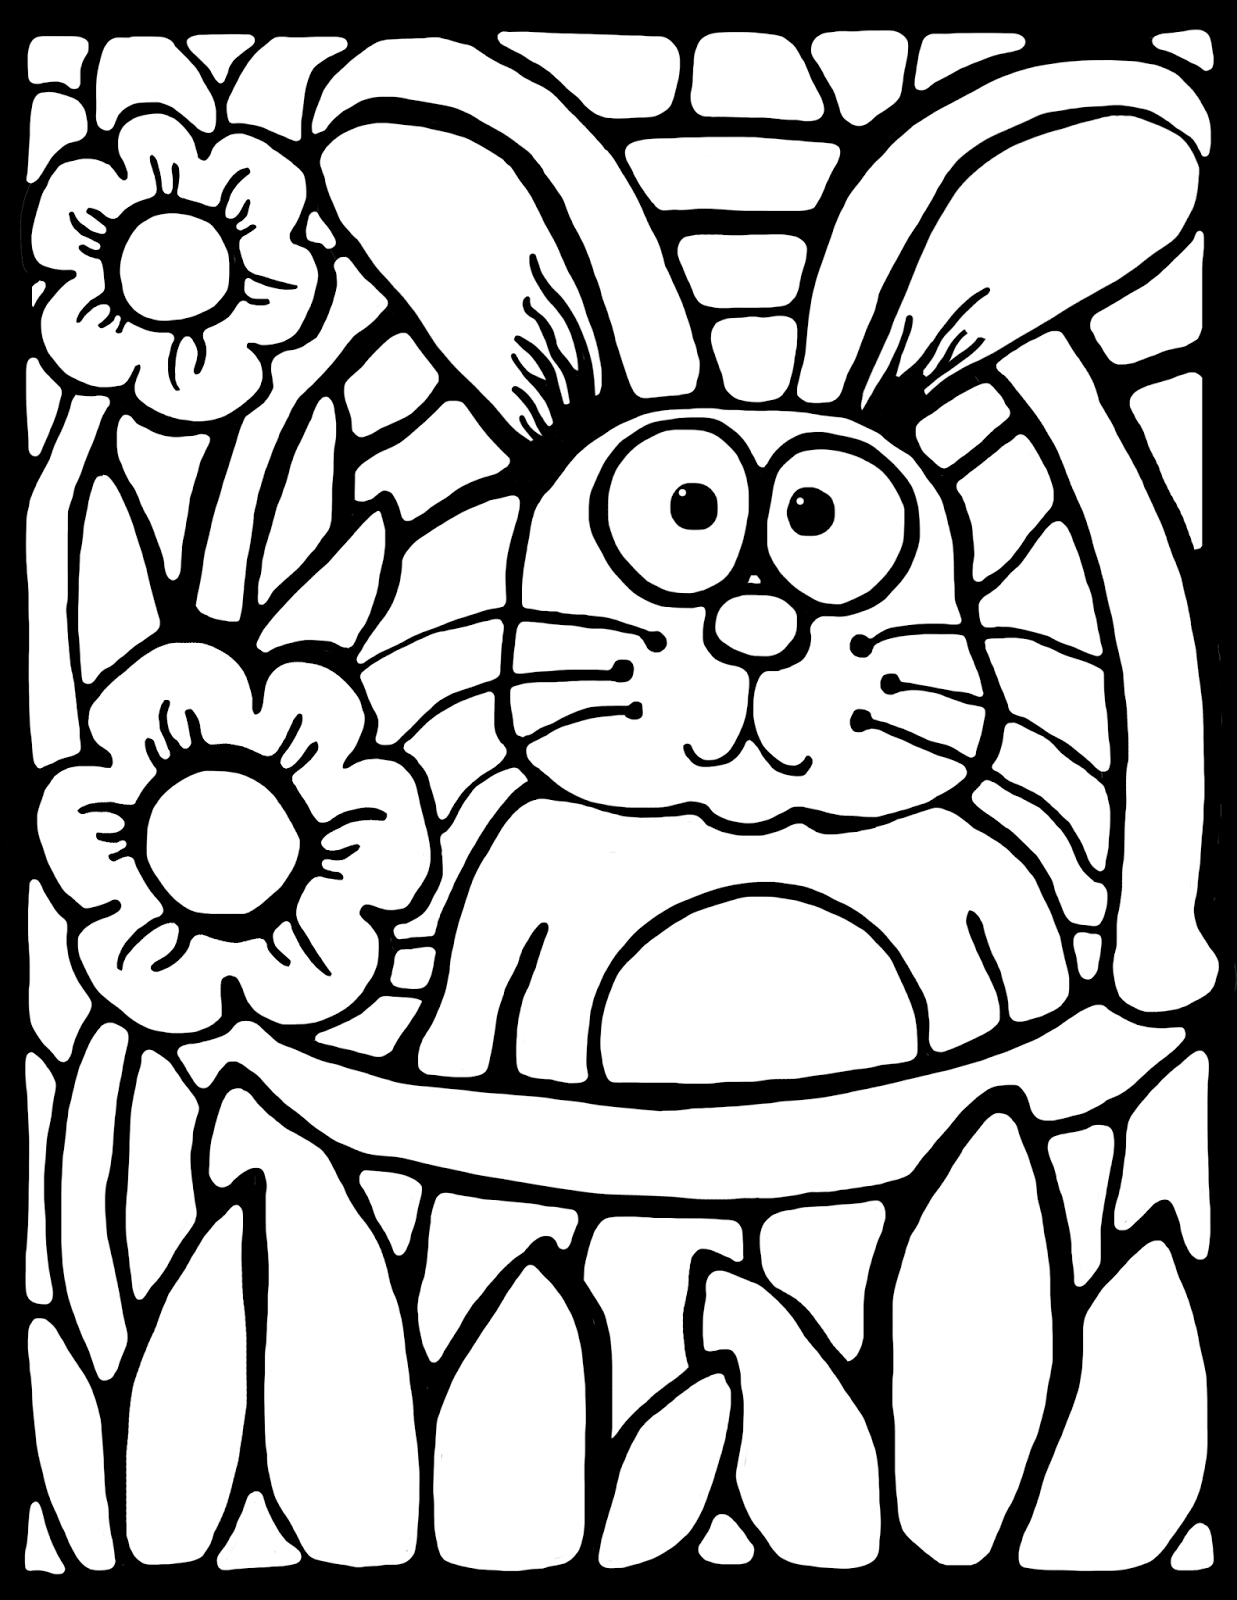 Free Grab This Cute Stained Glass Style Coloring Activity